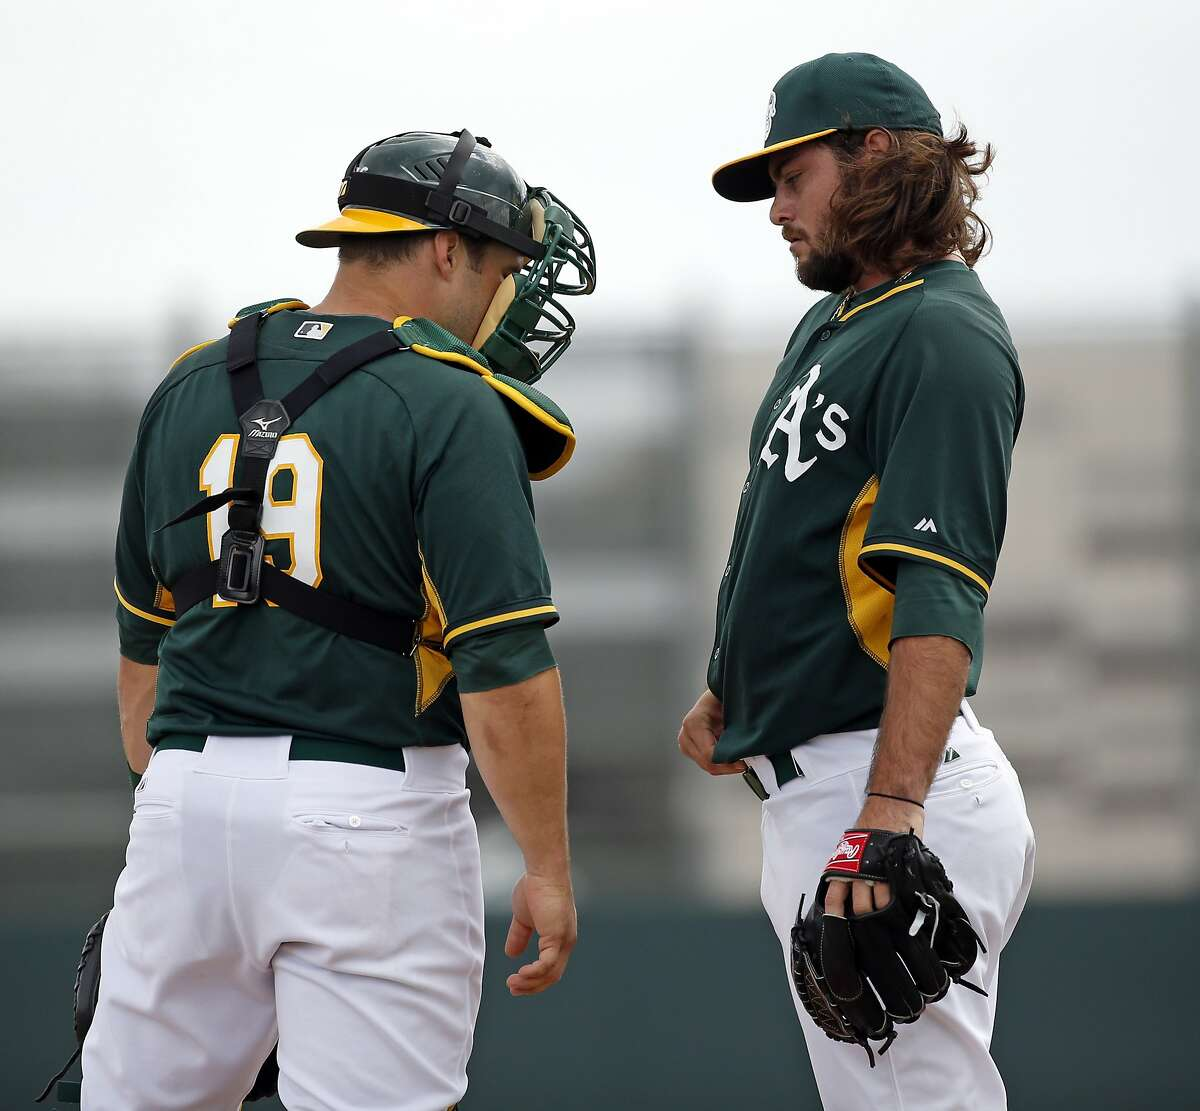 Oakland A' s R.J. Alvarez and Josh Phegley during intrasquad game at Spring Training at Fitch Park in Mesa, Arizona, on Saturday, February 28, 2015.